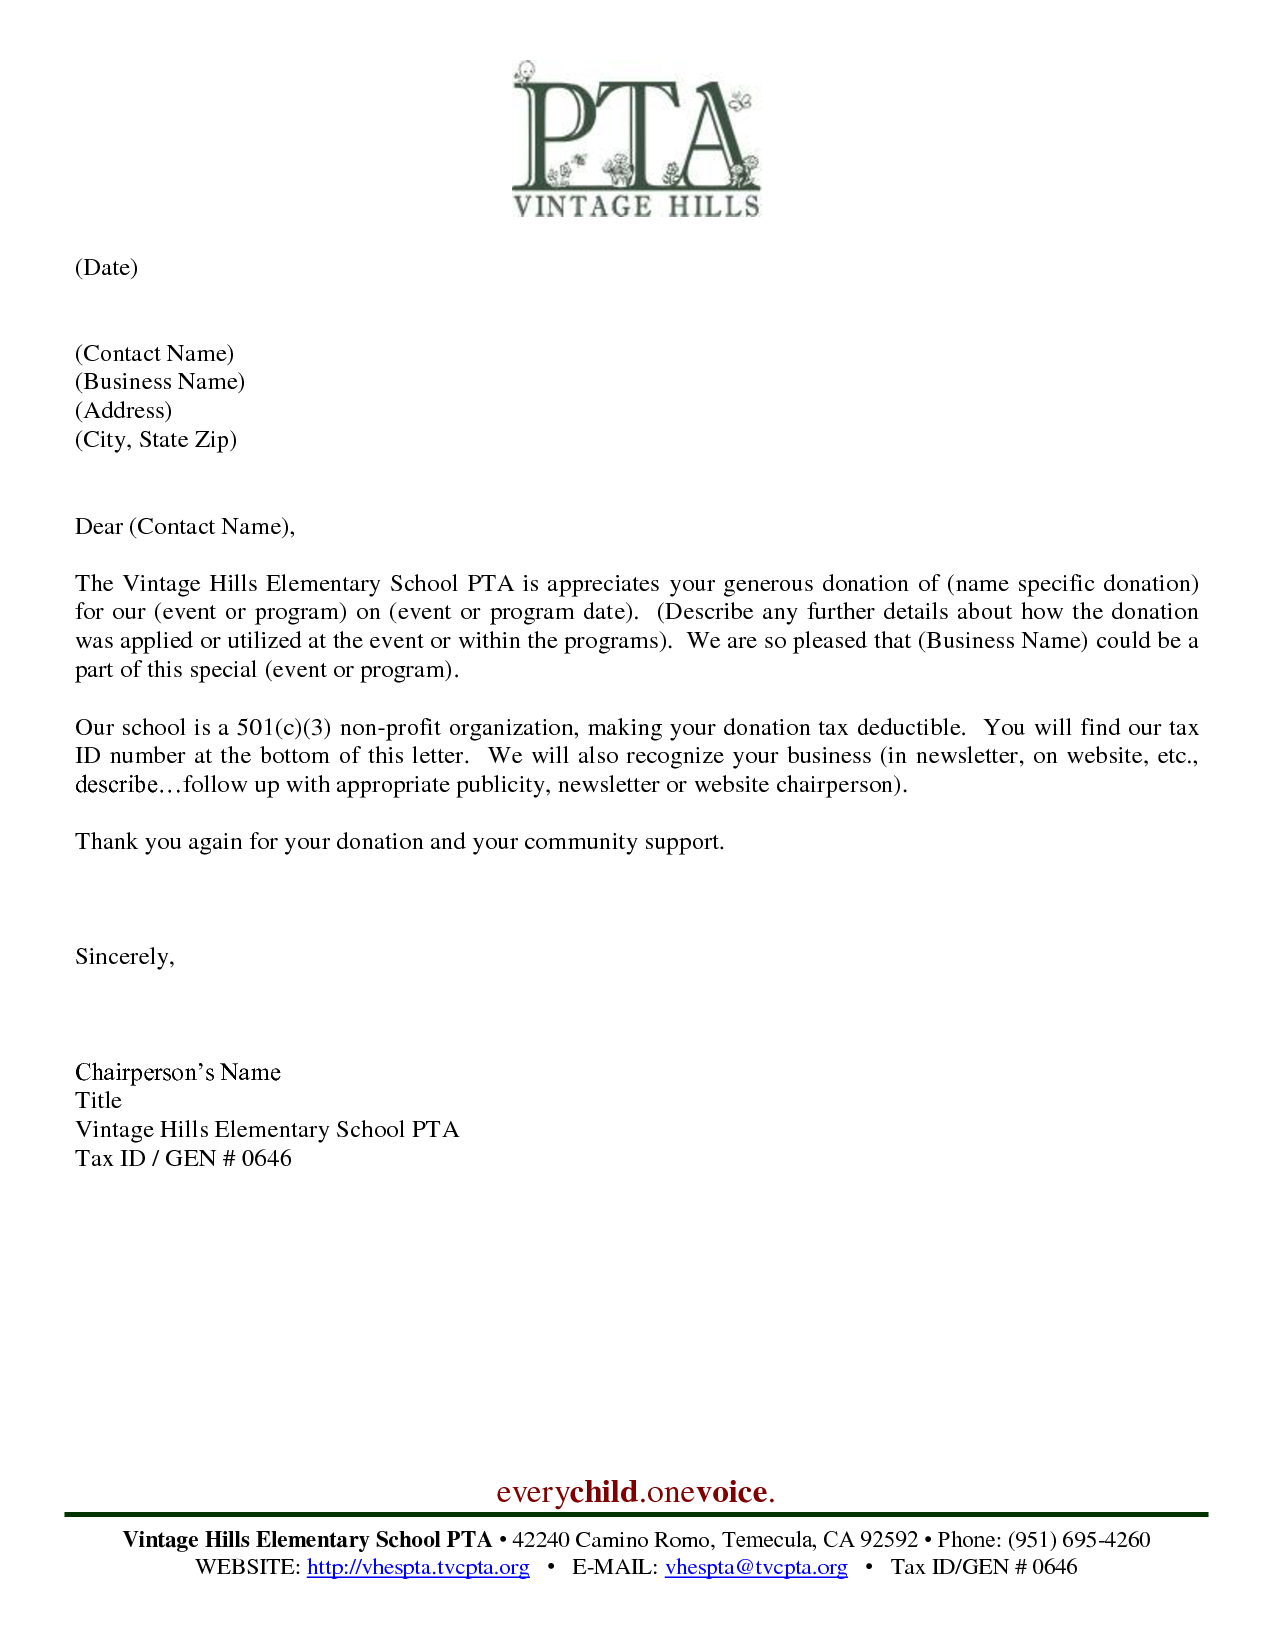 Fundraising Letter Template Non Profit organizations - Sample Thank You Letter for Donation to School Pdf format